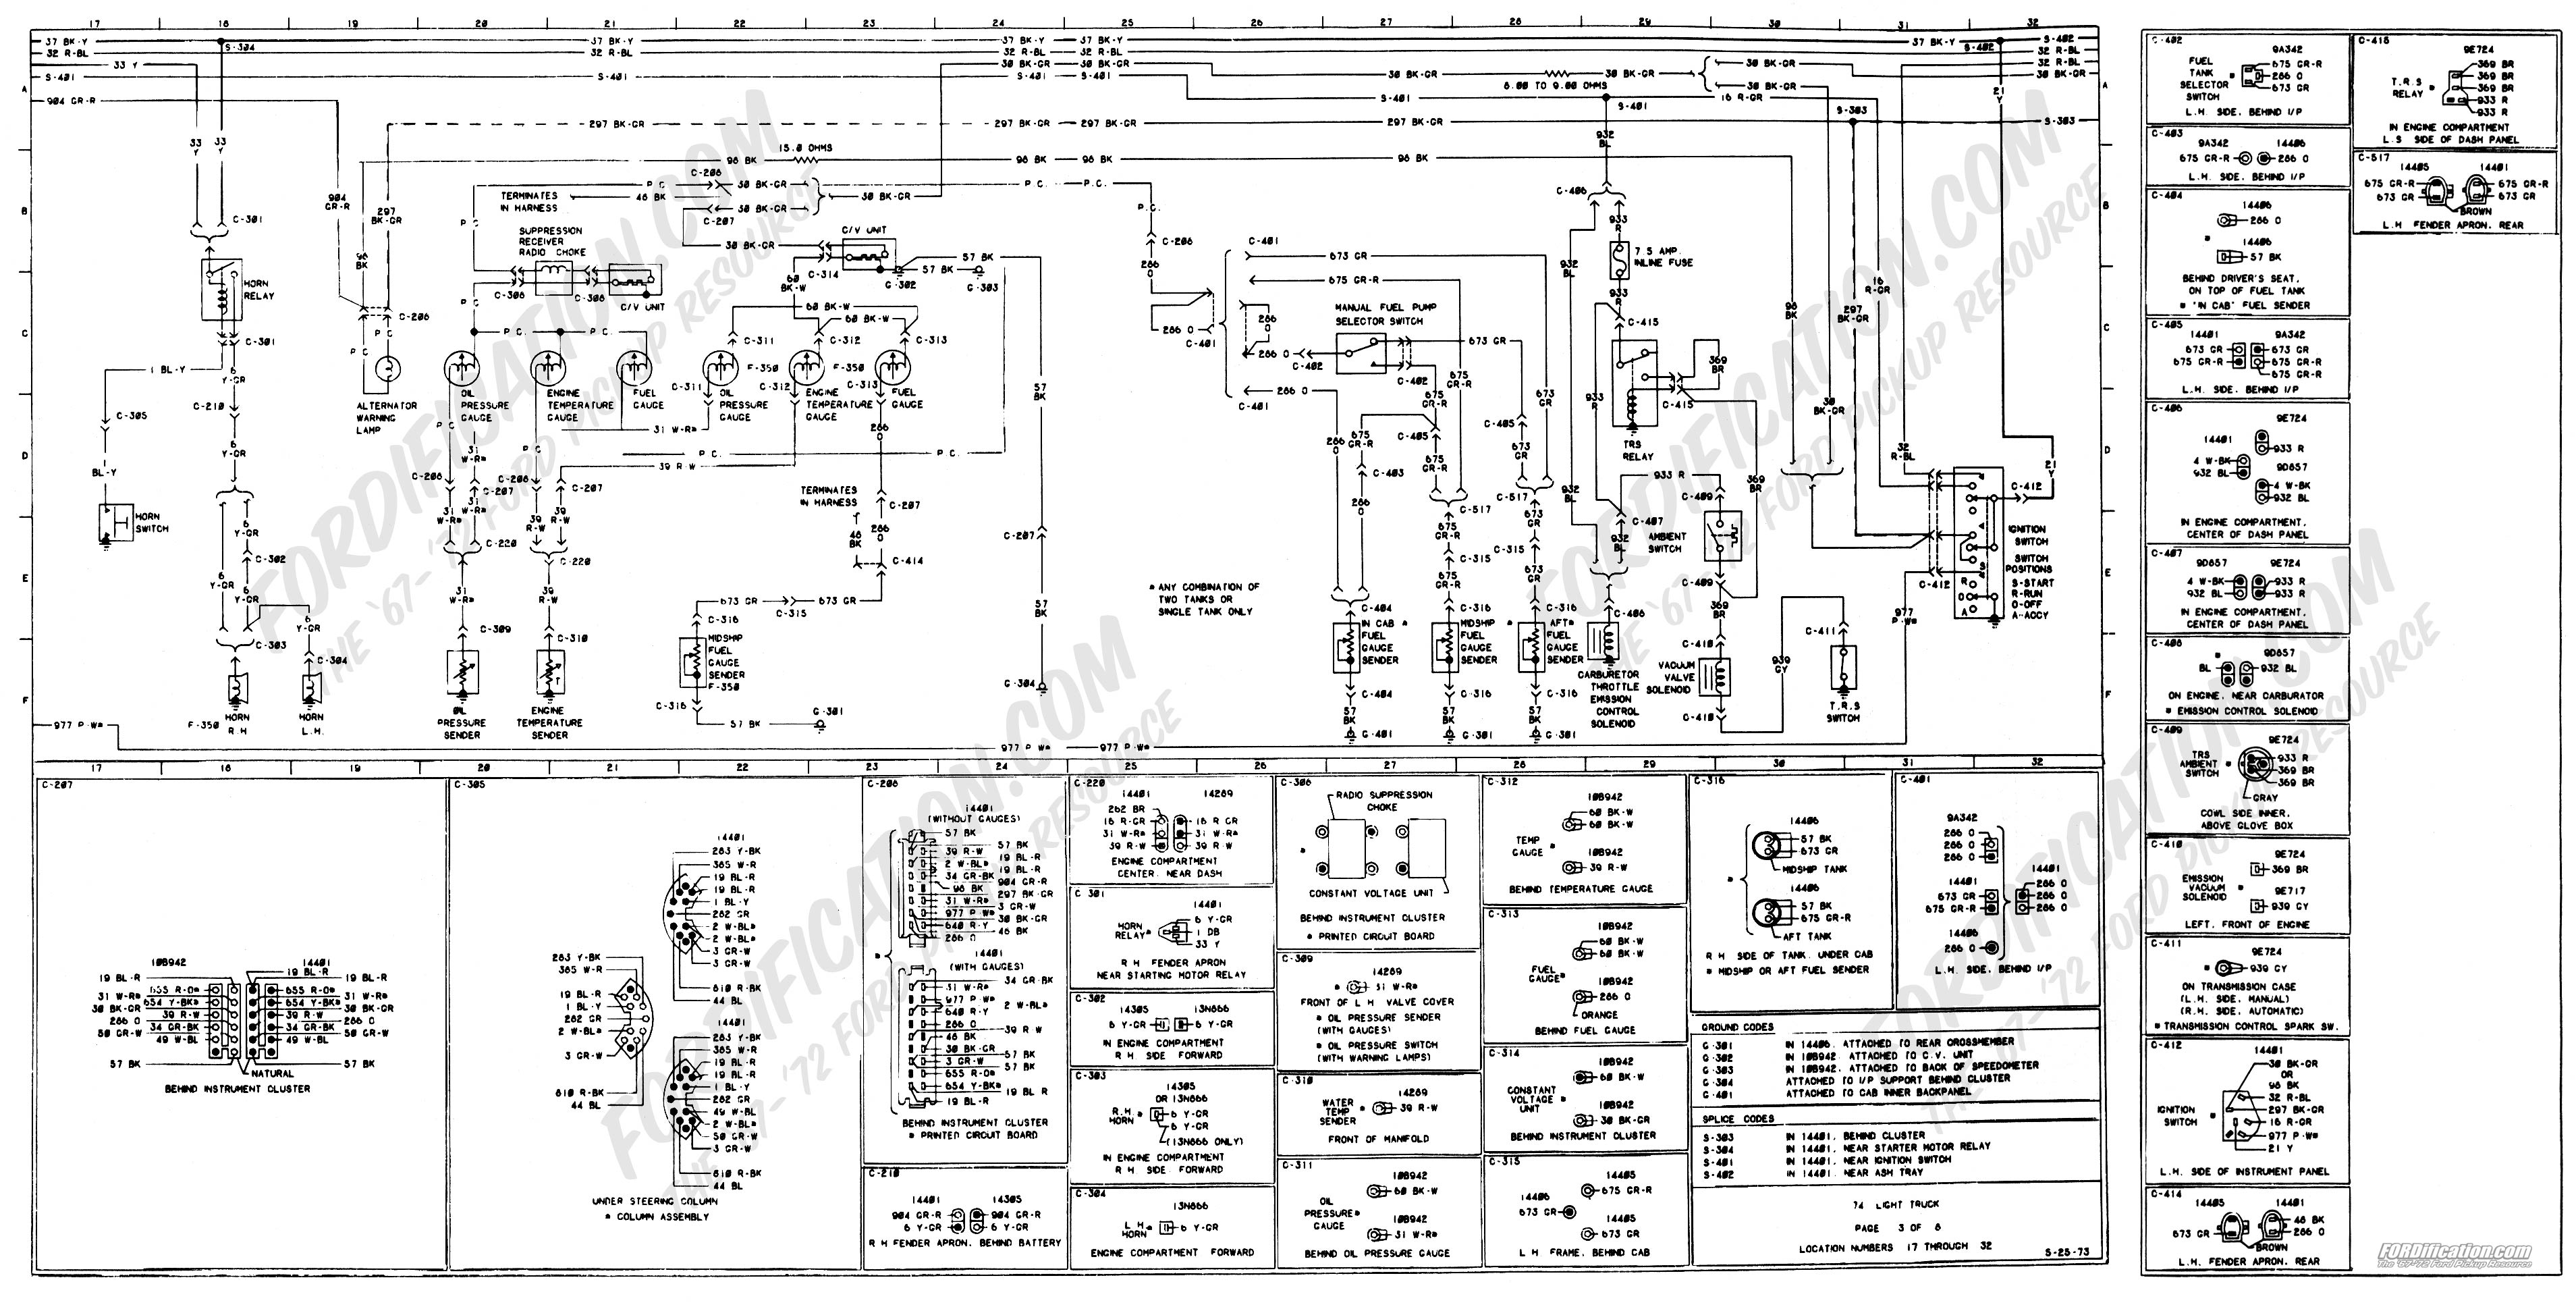 1973 1979 ford truck wiring diagrams schematics fordification net rh fordification net ford f350 radio wiring diagram 1999 ford f350 wiring diagram